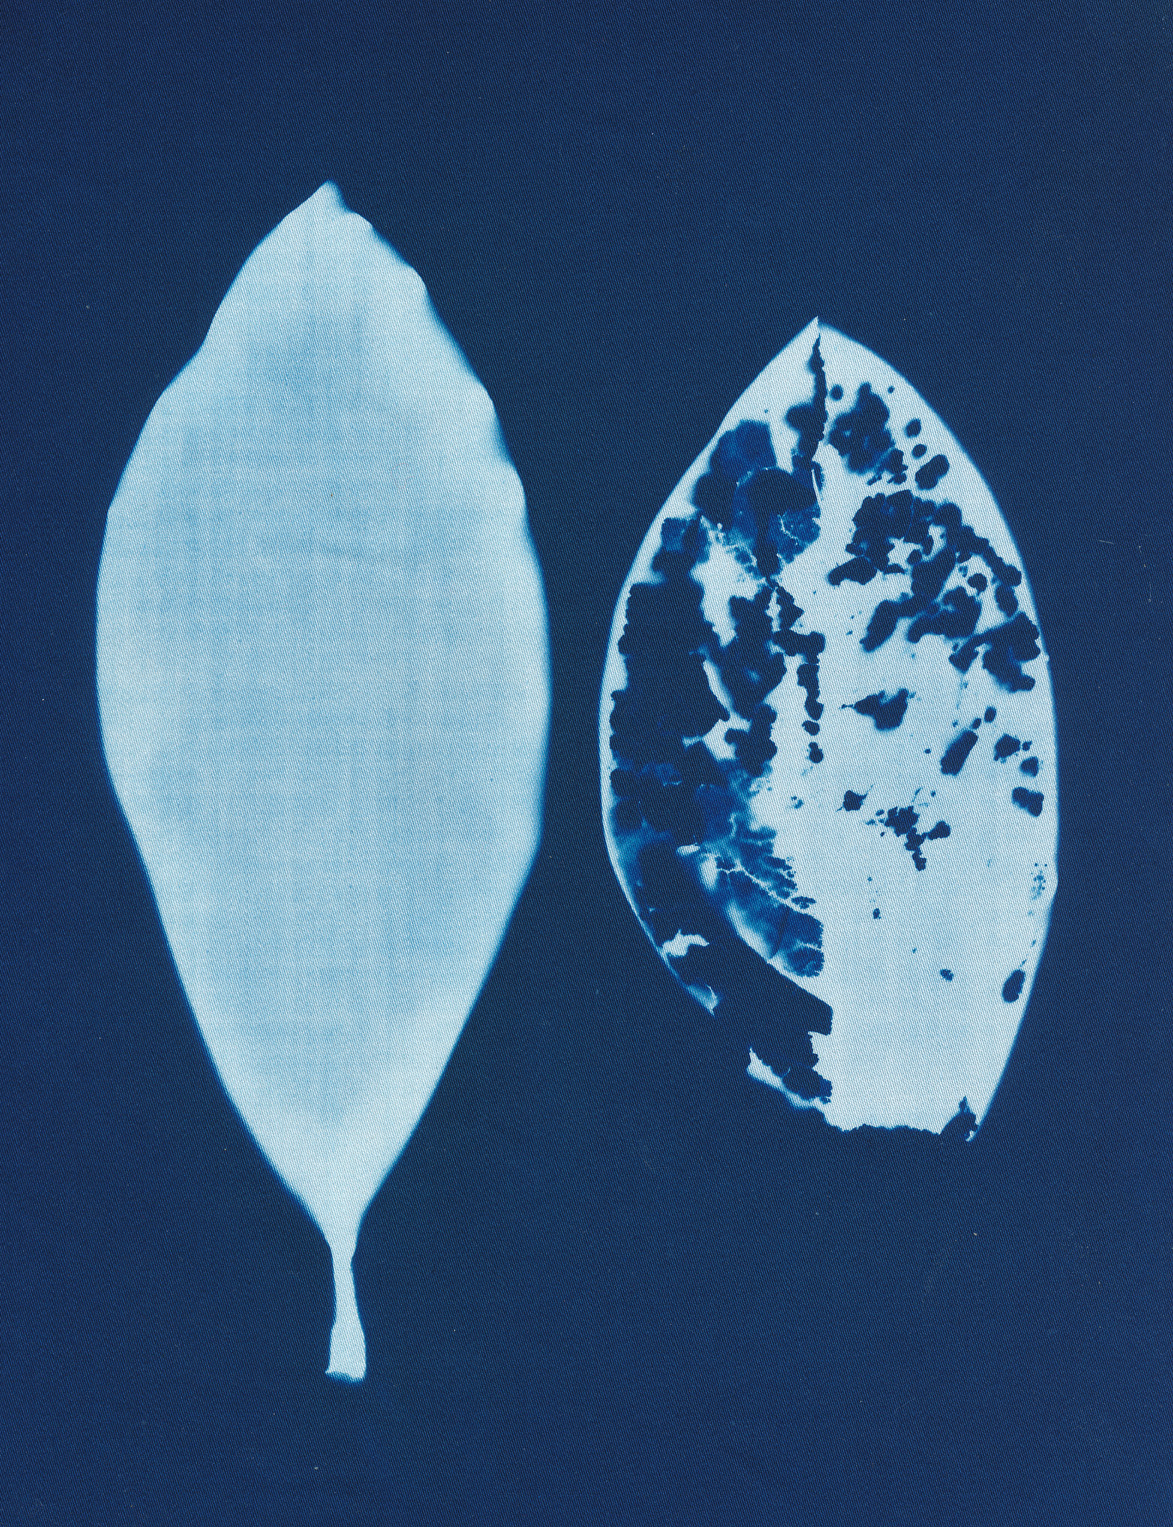 We Fade, cyanotype on cotton fabric, Mike Tedder